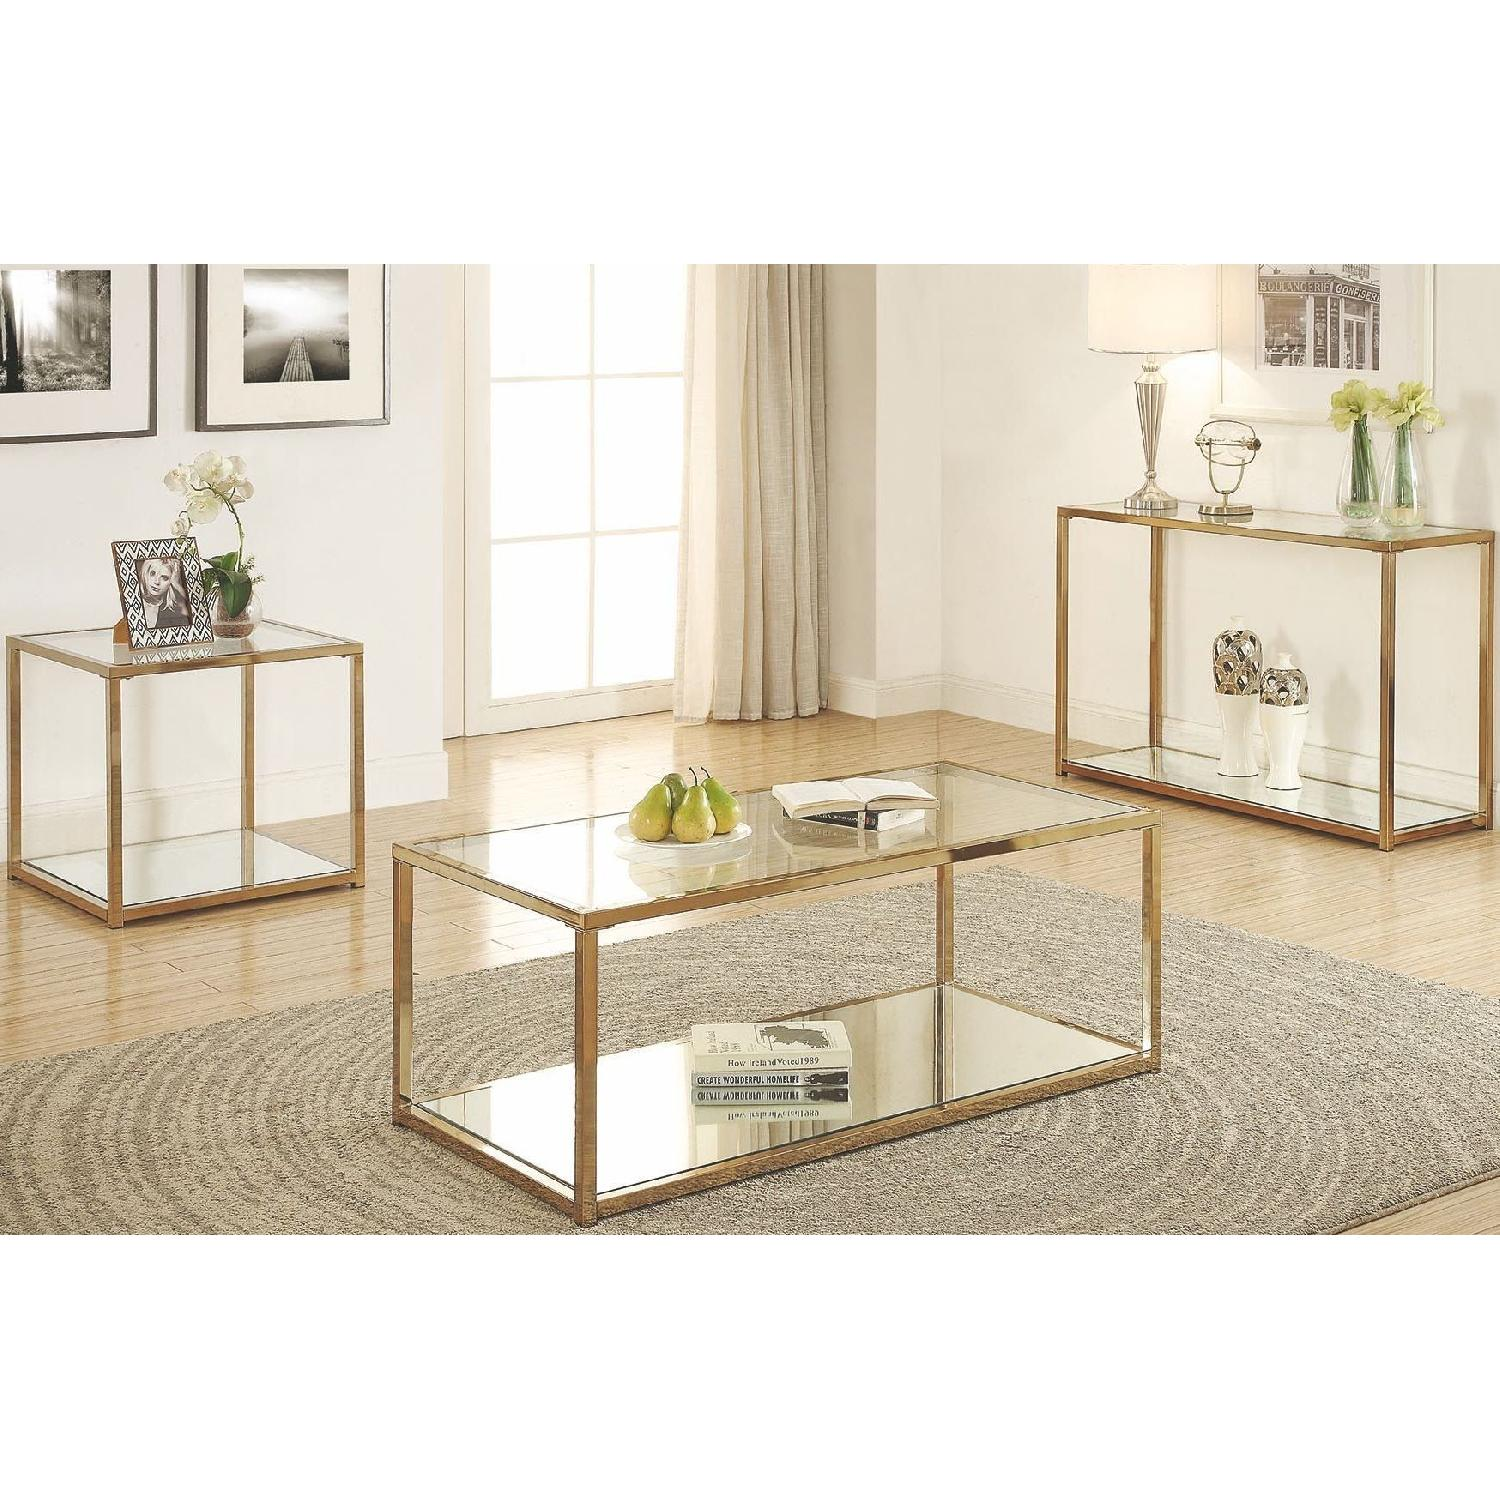 Modern Sofa Table w/ Chrome Frame,Glass Top & Mirror Shelf-2